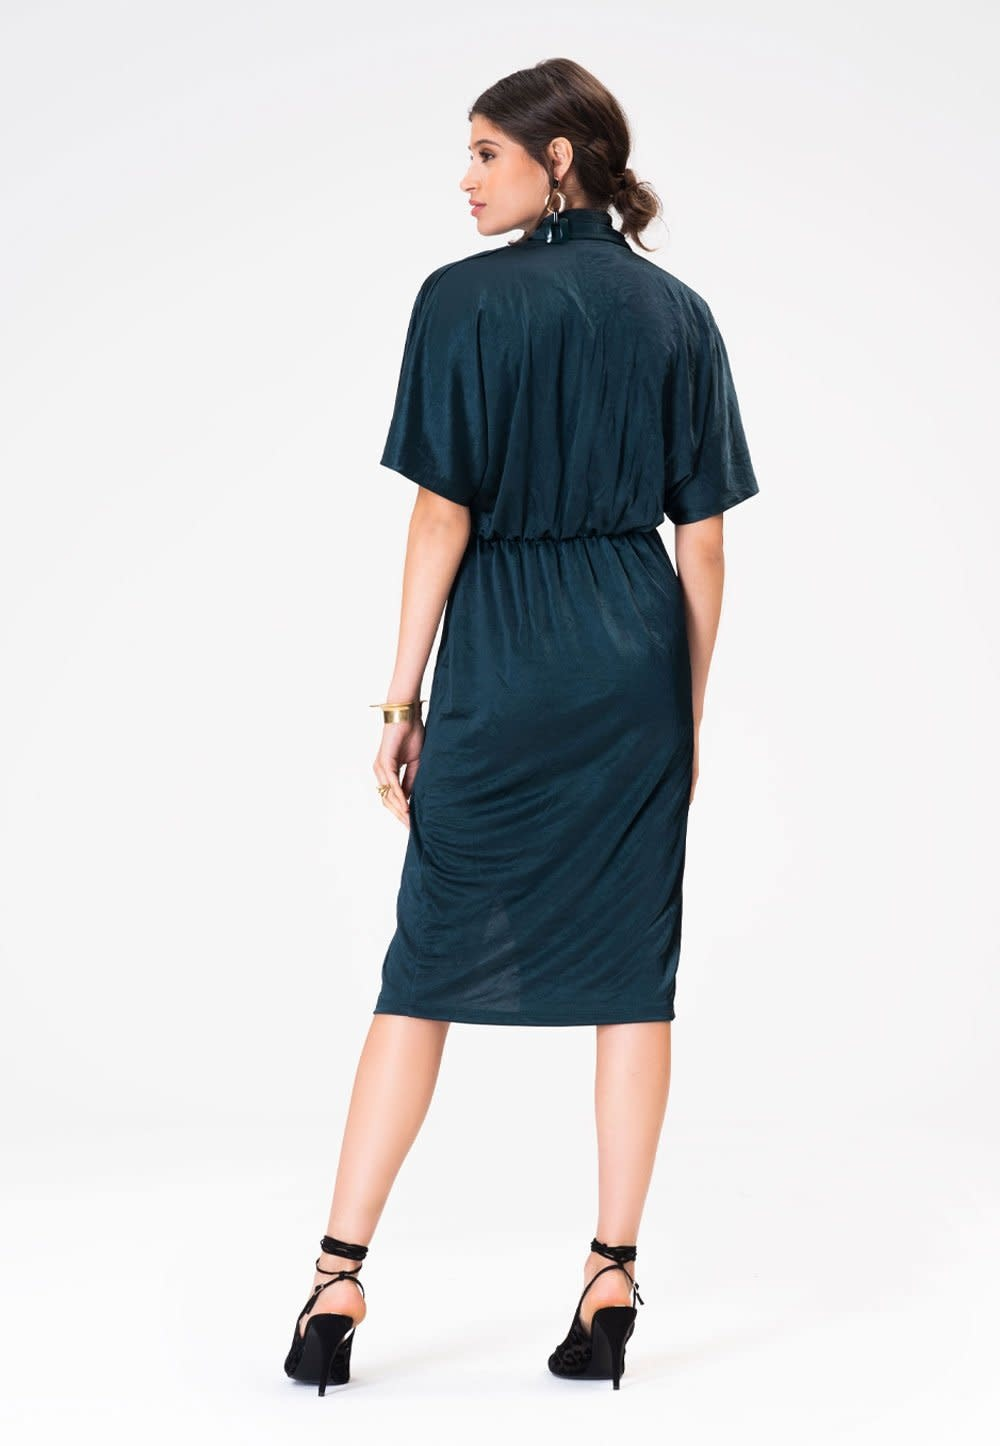 Leota Willow Dress in Luster Jersey Teal Green